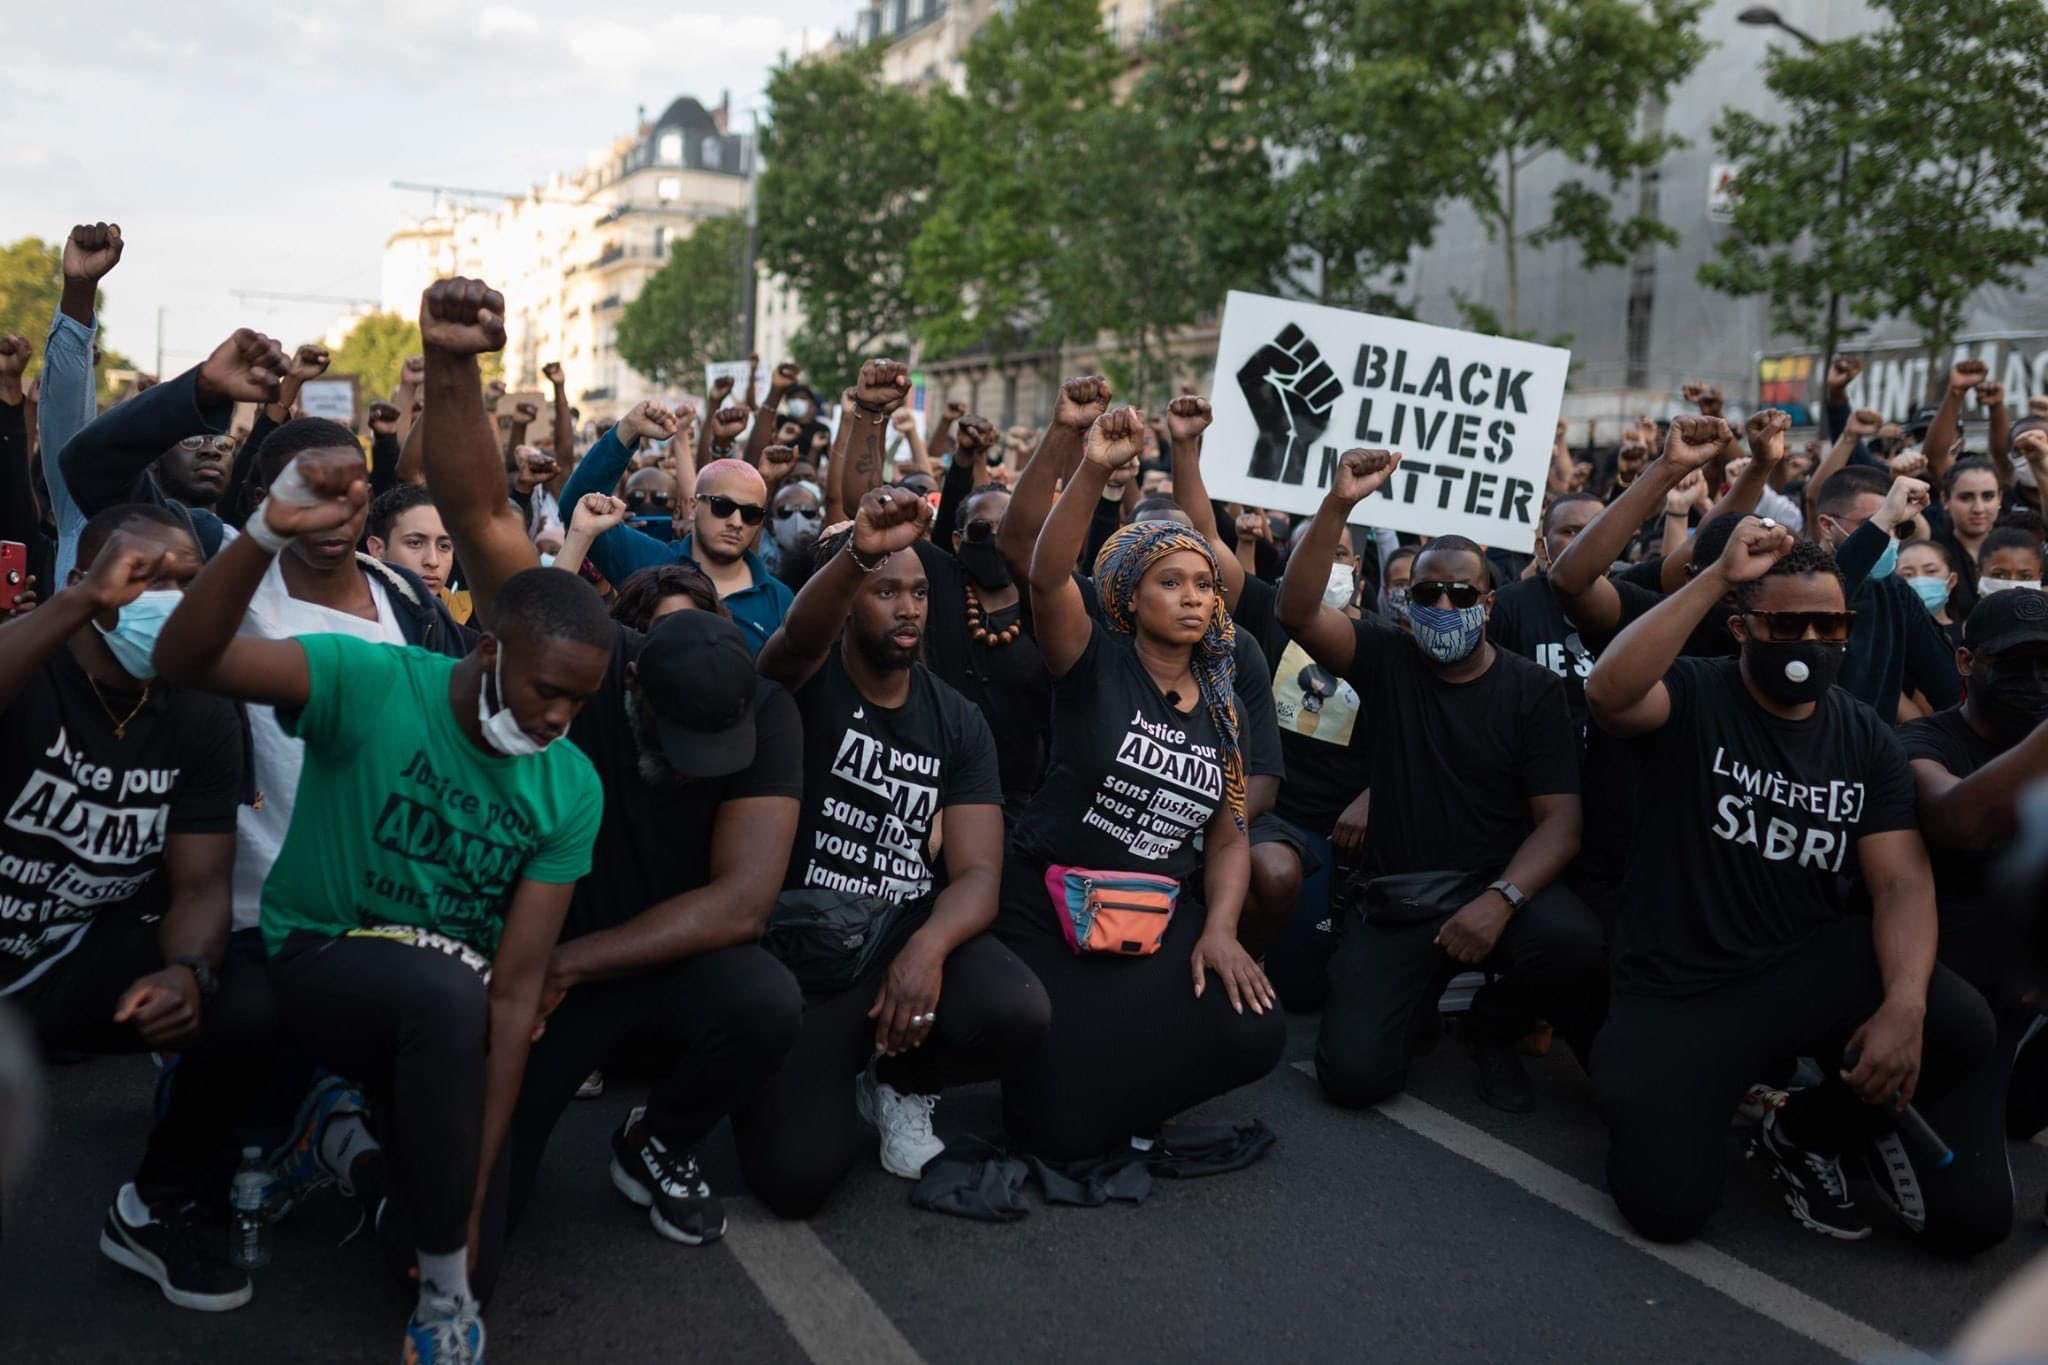 Assa Traore, the sister of Adama Traore addressing a 20,000-strong demonstration in Paris, France demanding justice for her brother, murdered by police and in support of the Black Lives Matter protests in the US last week